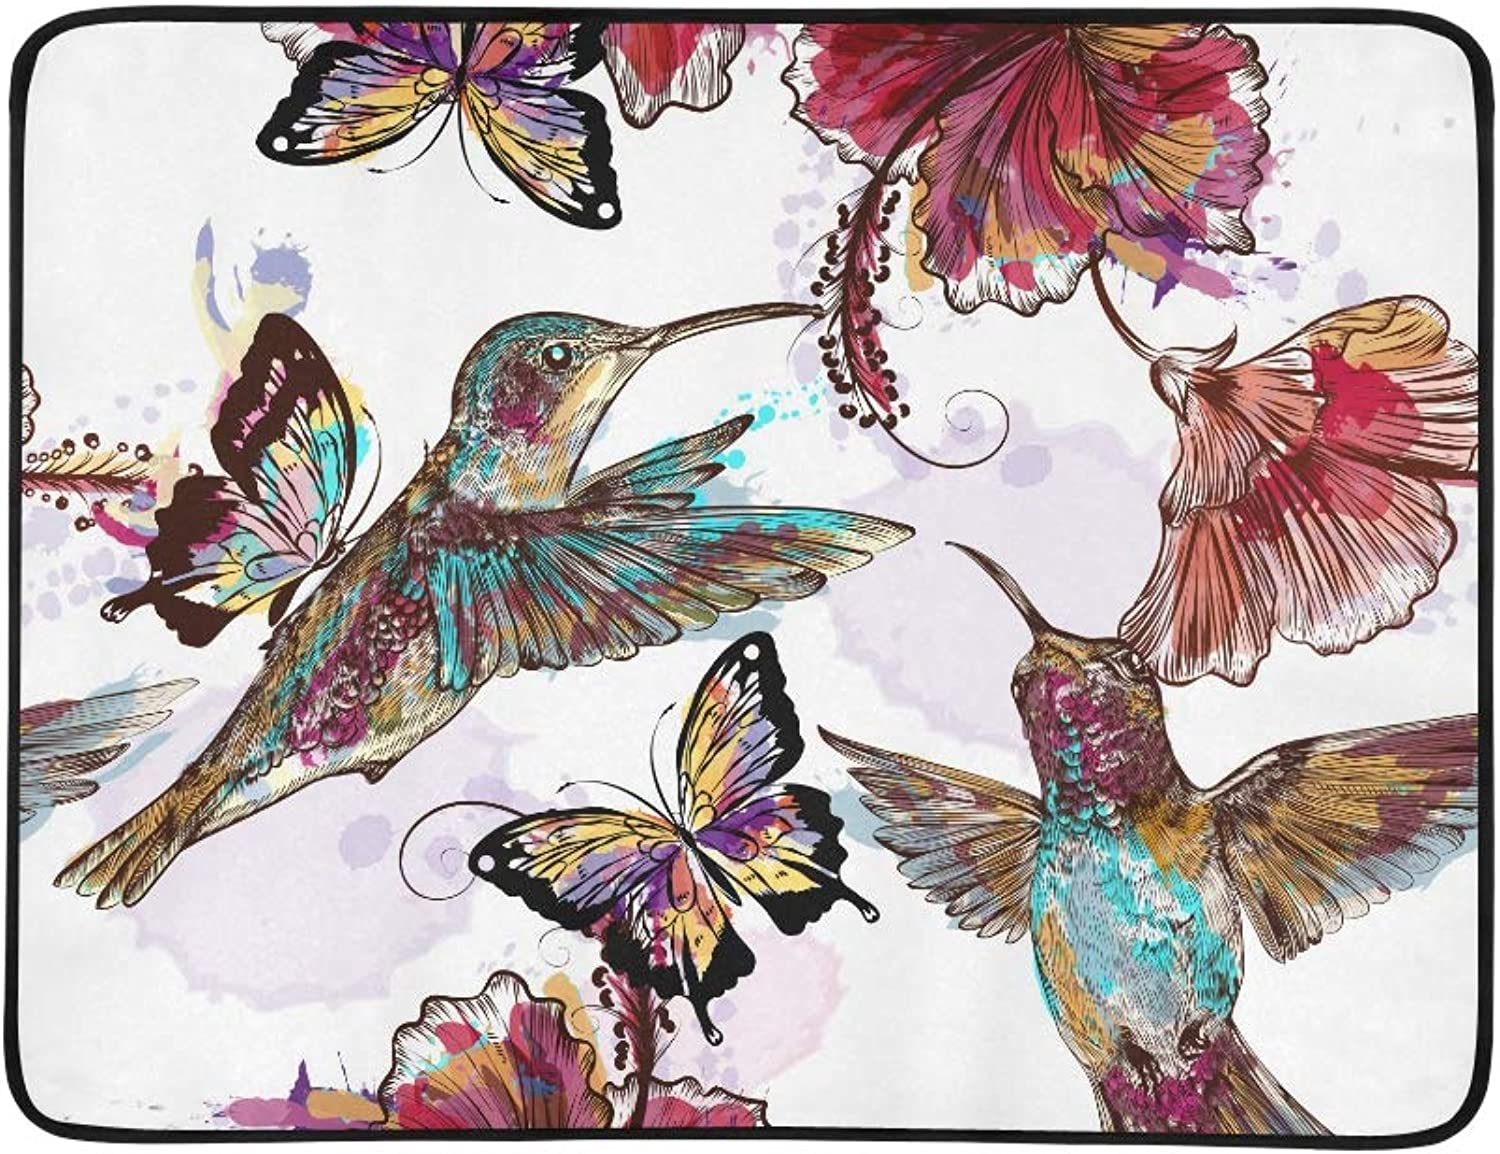 Watercolor Floral Hummingbirds Butterflies and Eng Pattern Portable and Foldable Blanket Mat 60x78 Inch Handy Mat for Camping Picnic Beach Indoor Outdoor Travel